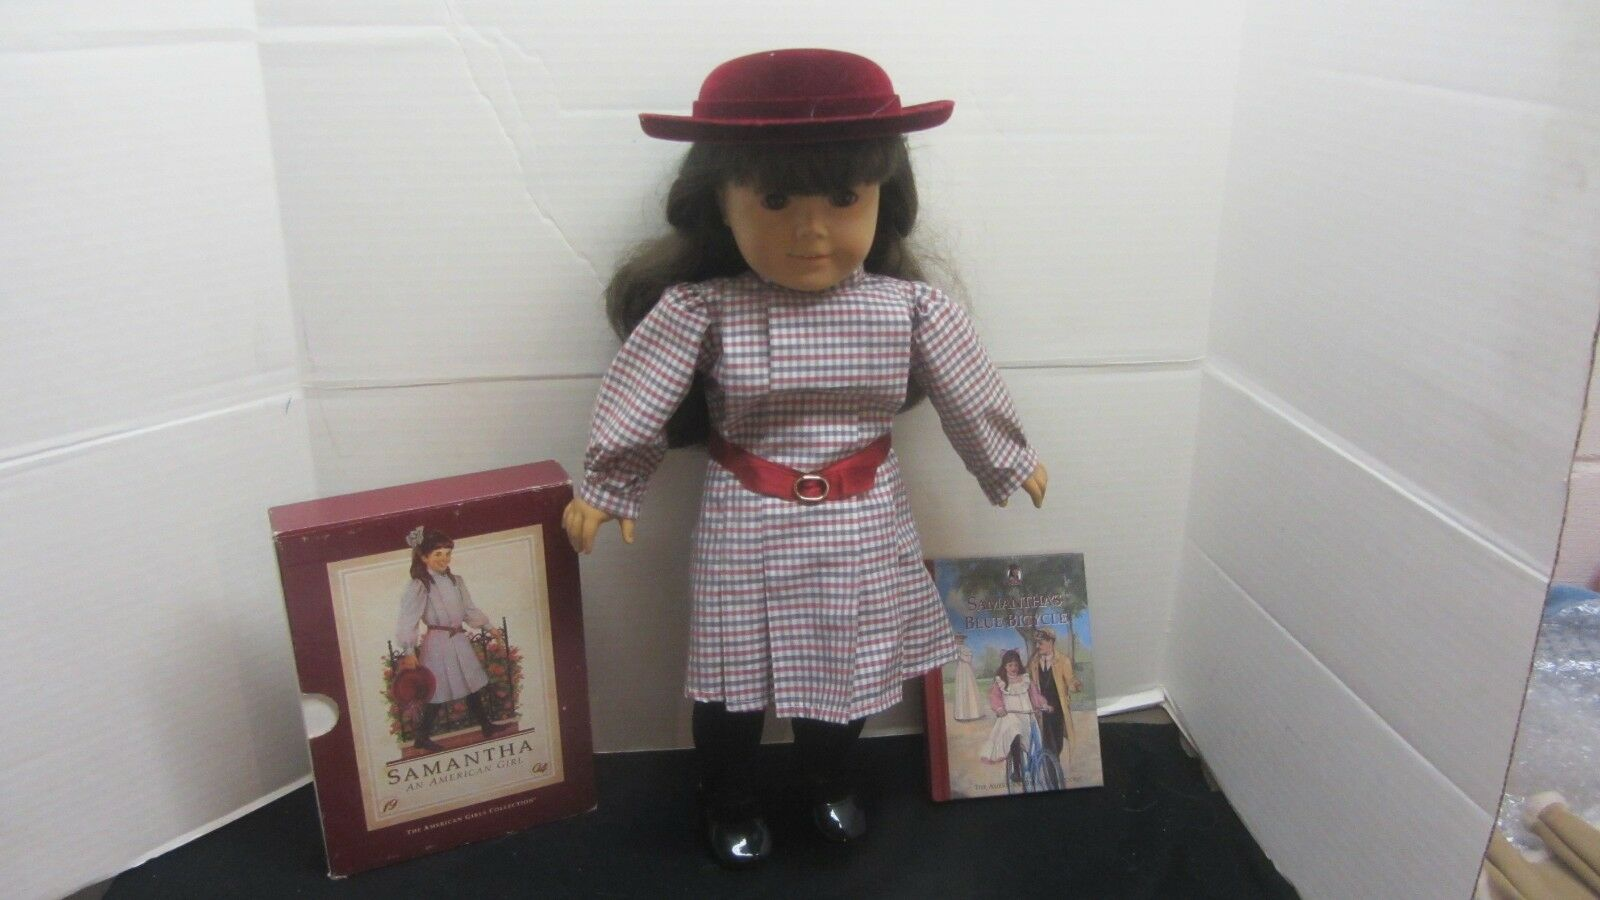 AMERICAN GIRL PLEASANT COMPANY SAMANTHA DOLL WITH BOOKS